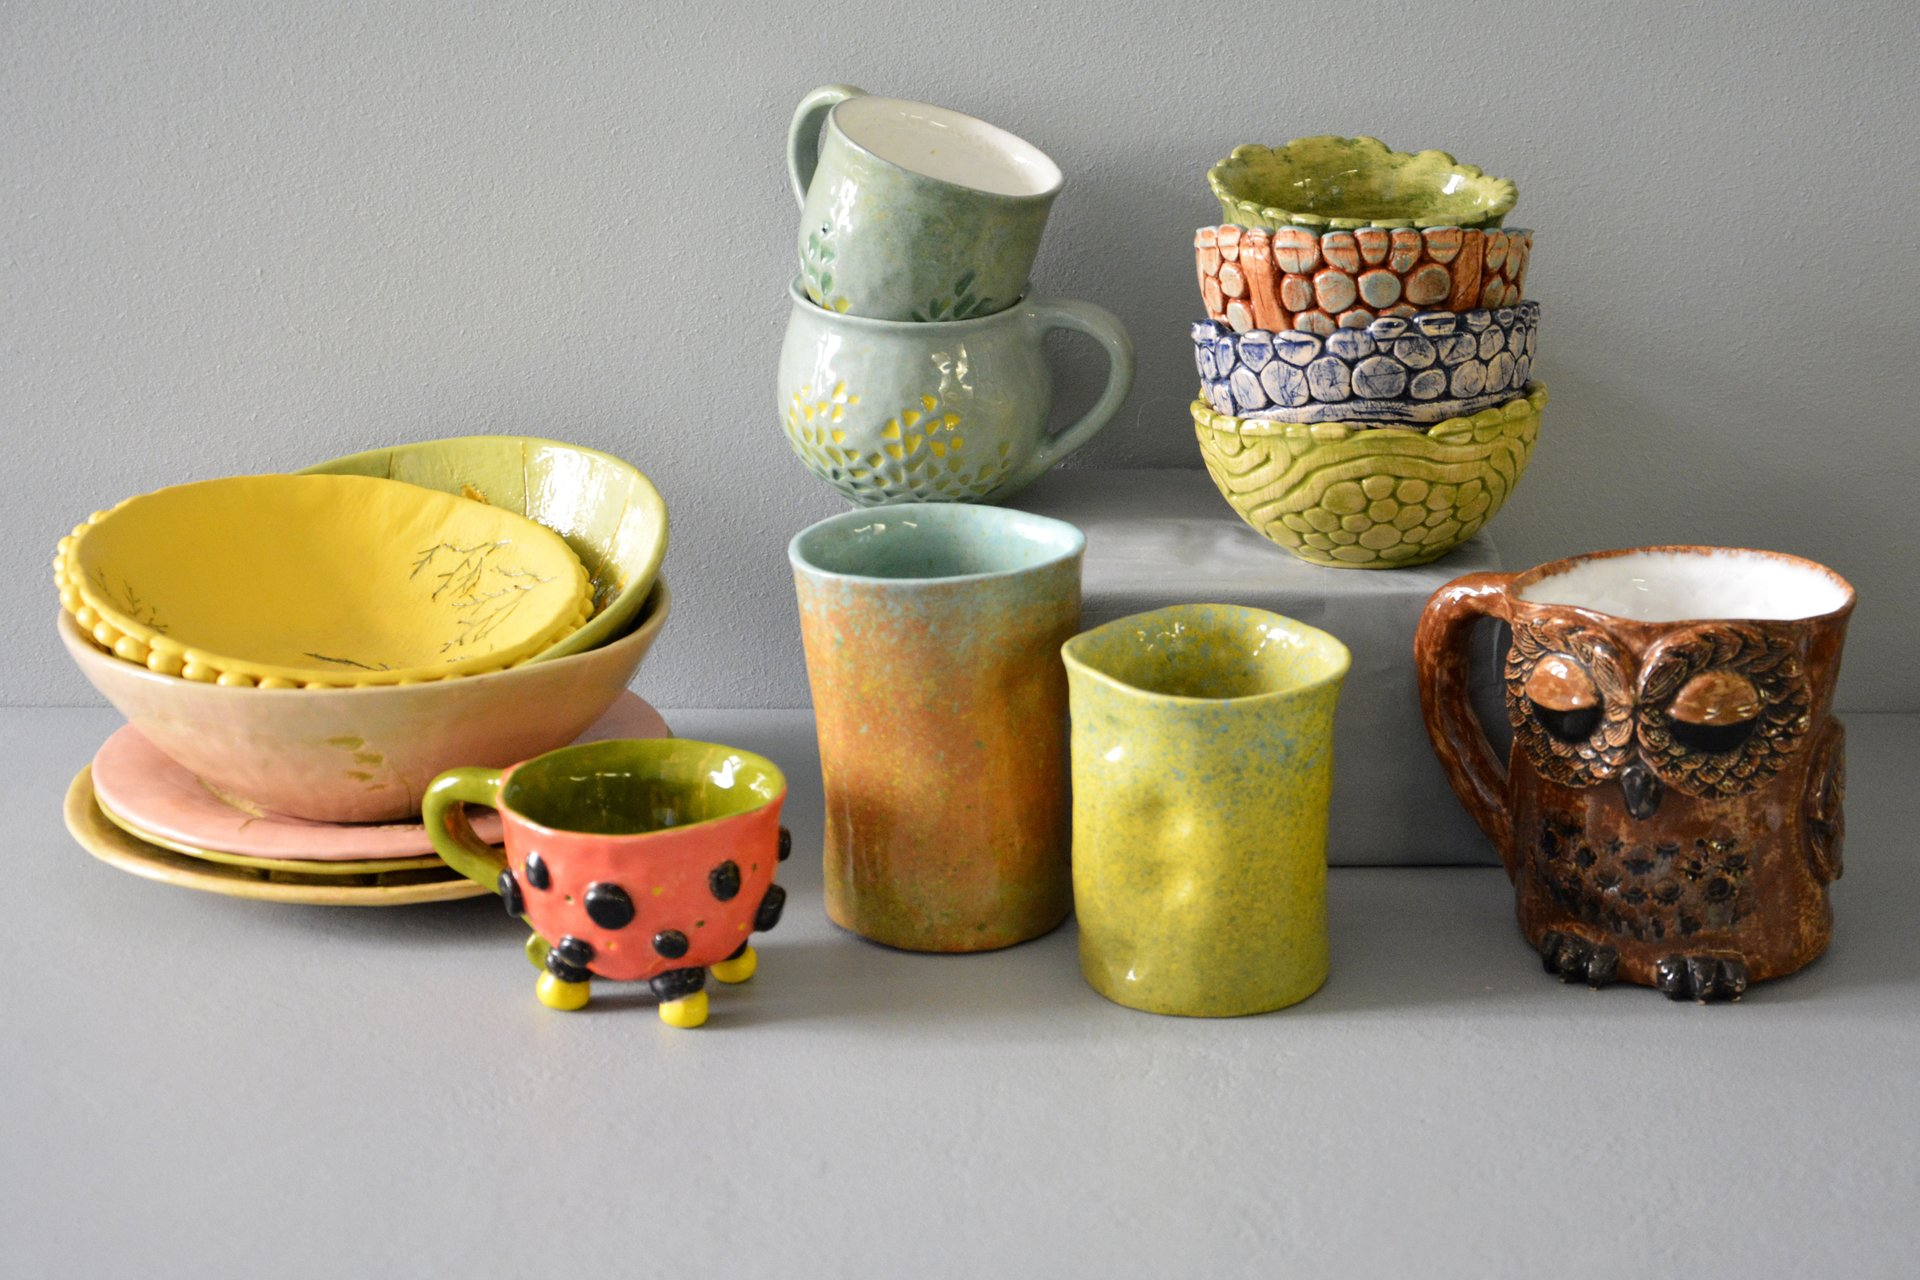 Author's original ceramic hand-made dishes